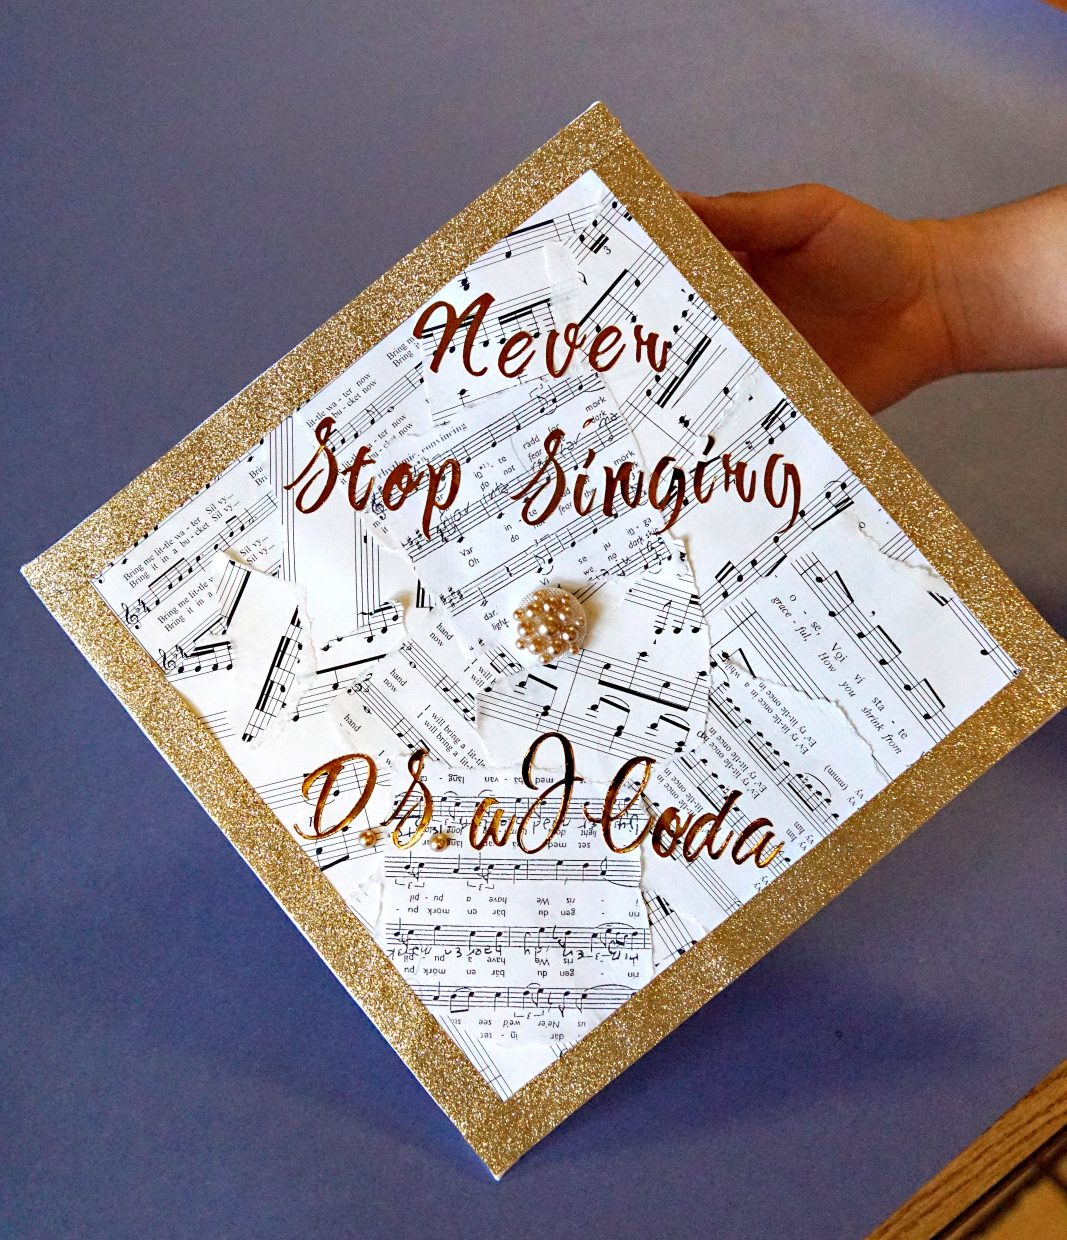 This musically themed cap caught the attention of adults on hand to assist students.